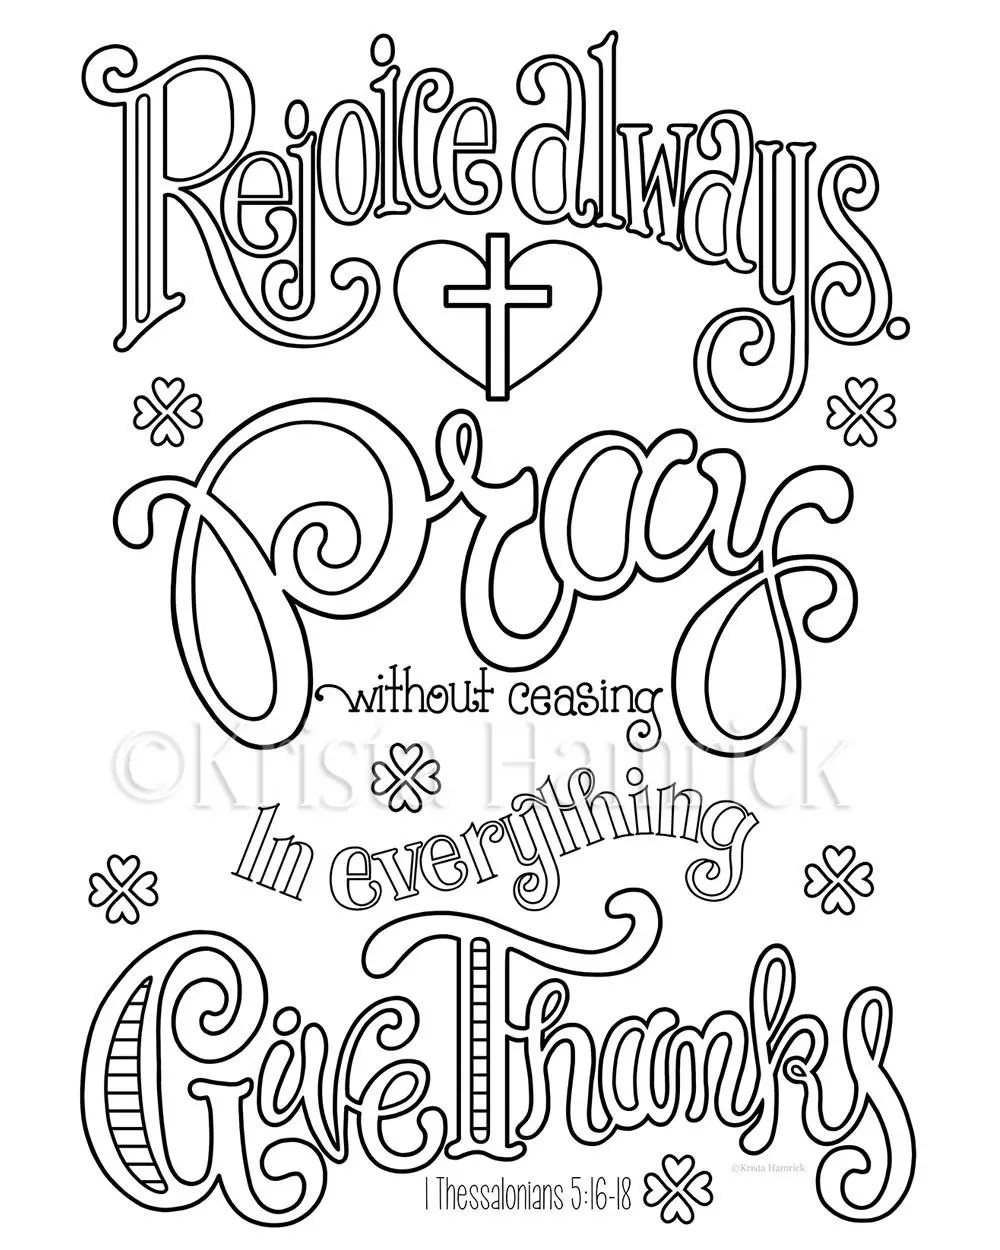 Rejoice Pray Give Thanks coloring page in two sizes: 8